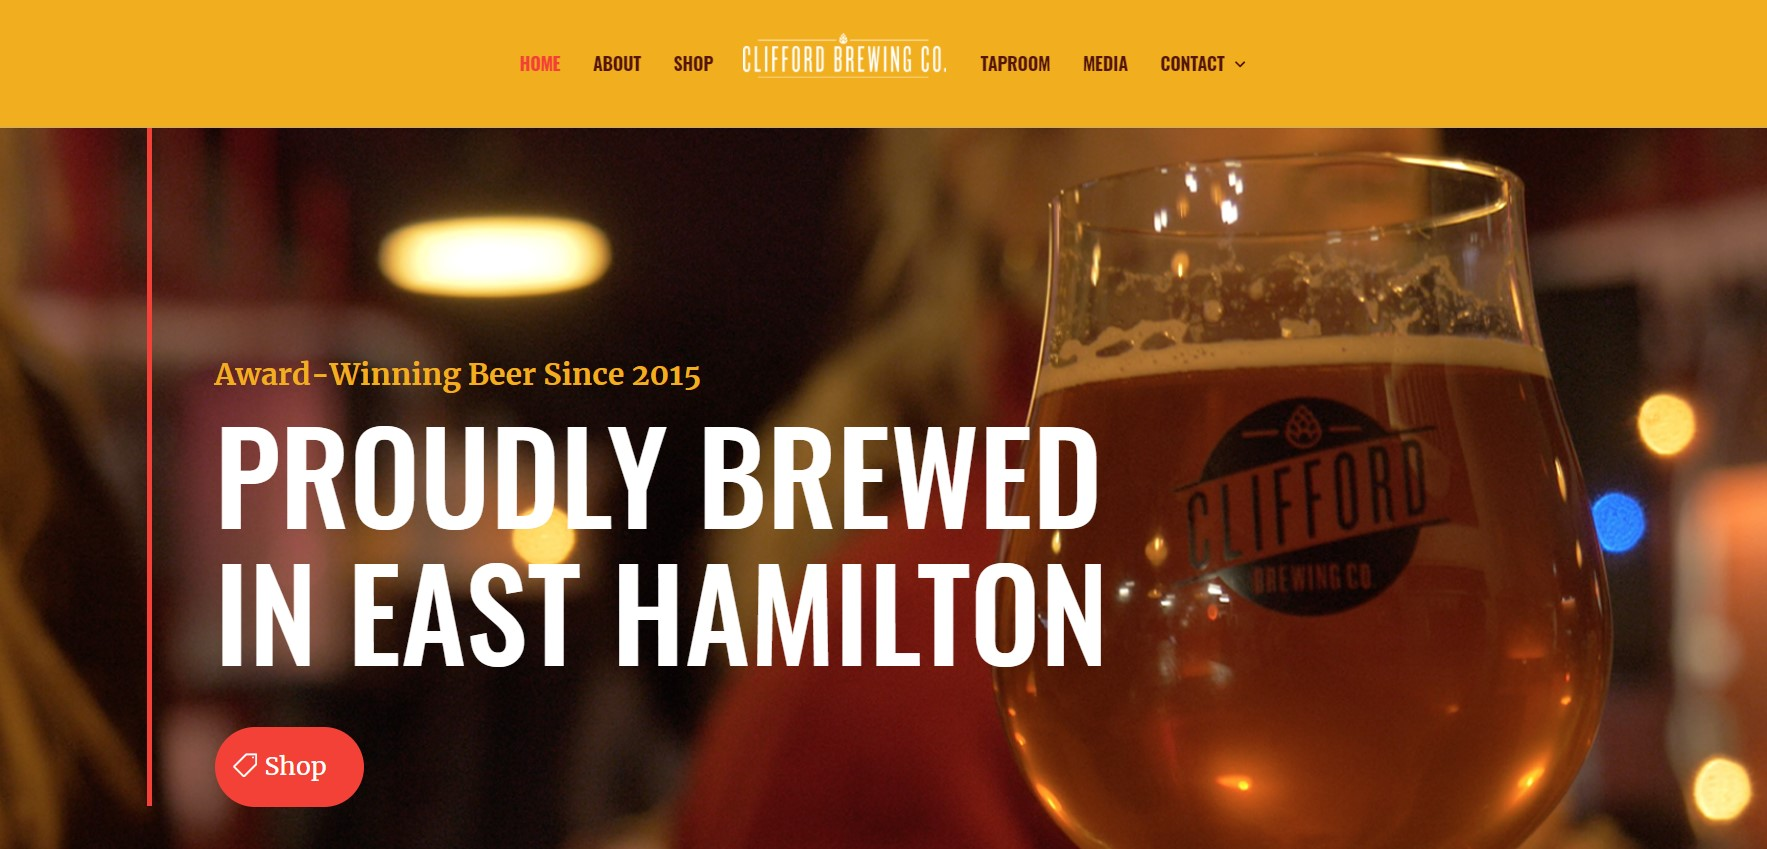 clifford brewing co craft brewery in hamilton